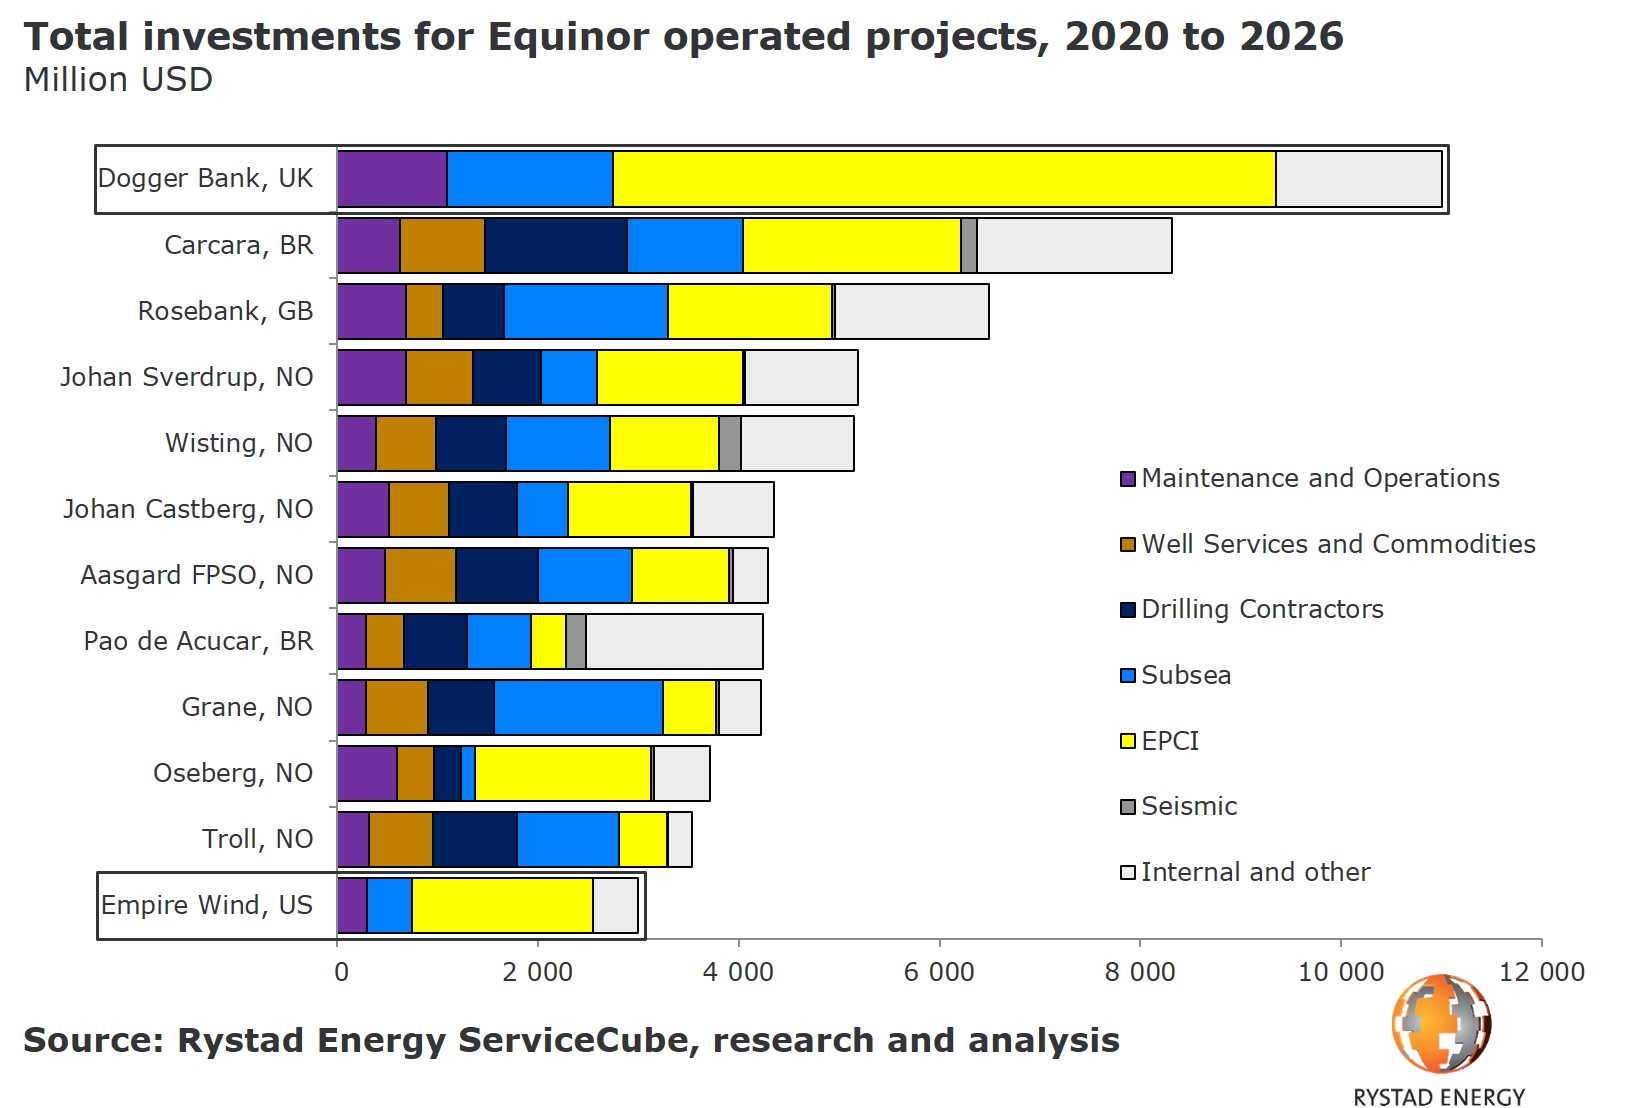 Total investments for Equinor operated projects 2020 2026 Rystad Energy Dogger Bank